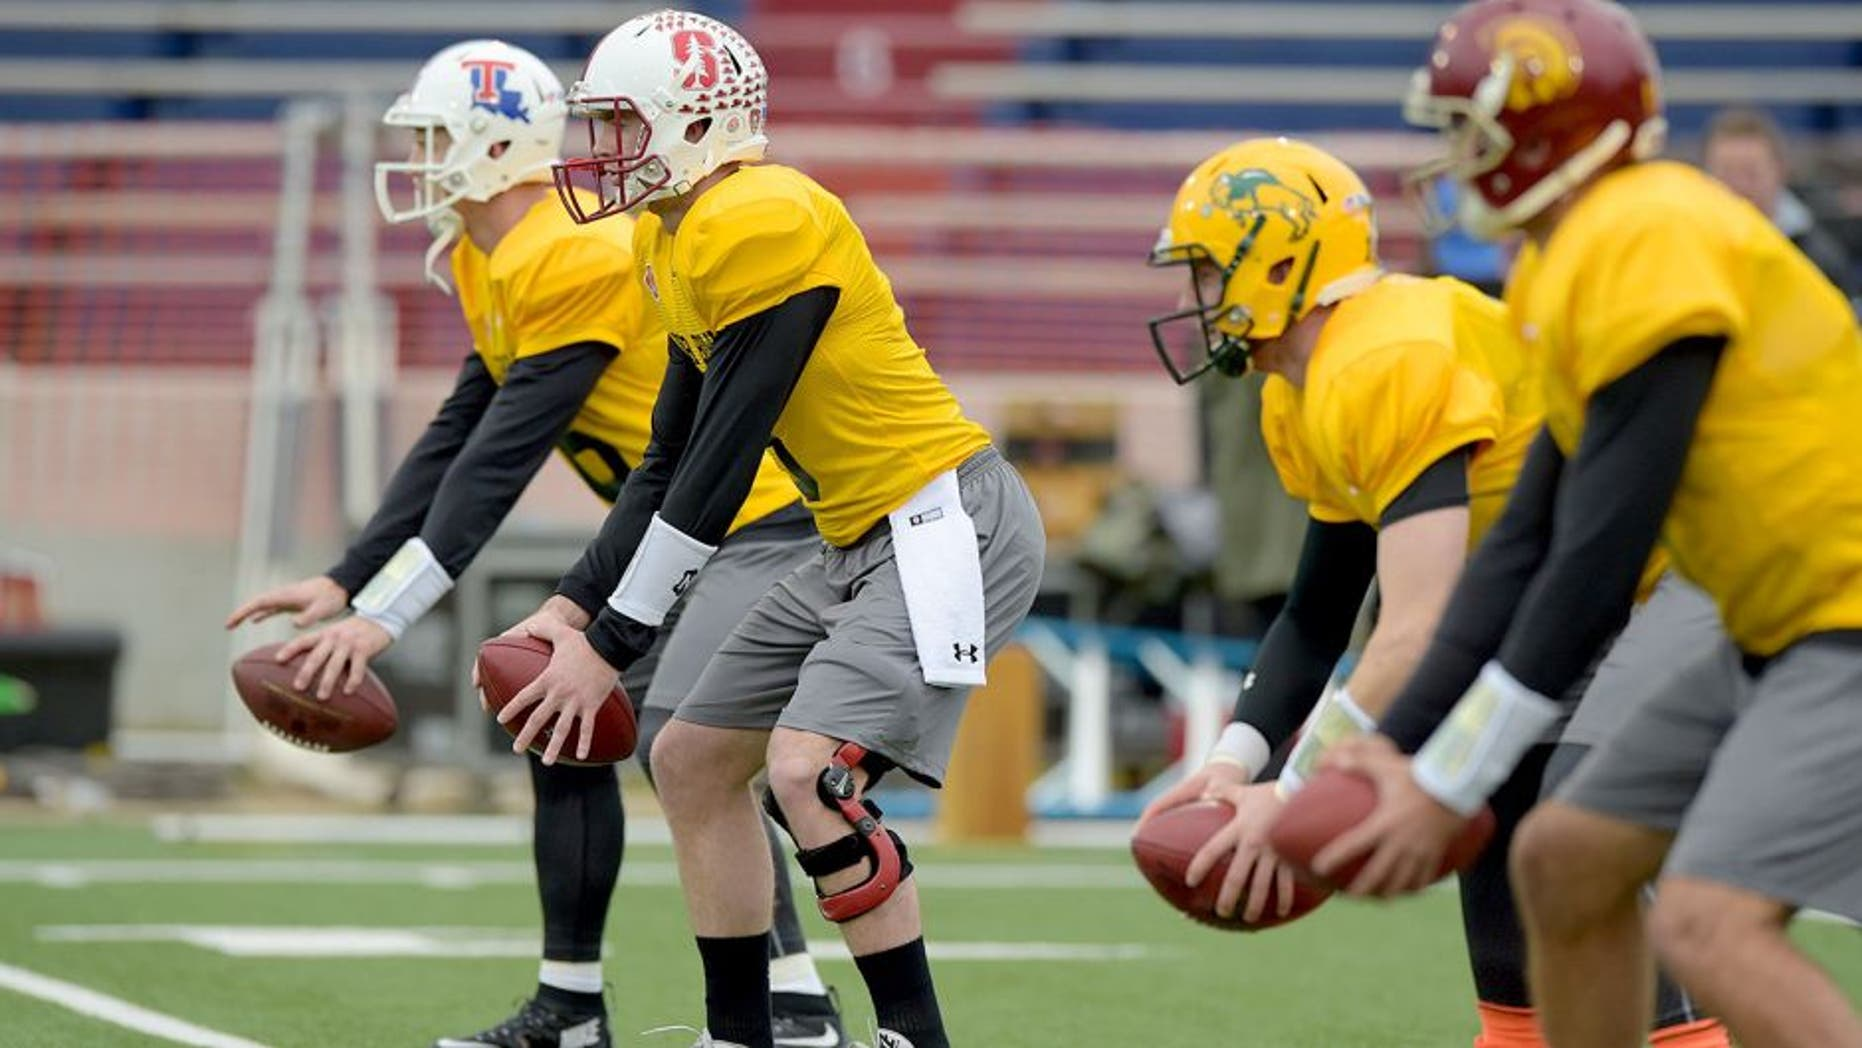 Jan 26, 2016; Mobile, AL, USA; North squad quarterback Jeff Driskel of Louisiana Tech (far left) and quarterback Kevin Hogan of Stanford (left) and quarterback Carson Wentz of North Dakota State (right) and quarterback Cody Kessler of USC (far right) take snaps during Senior Bowl practice at Ladd-Peebles Stadium. Mandatory Credit: Glenn Andrews-USA TODAY Sports